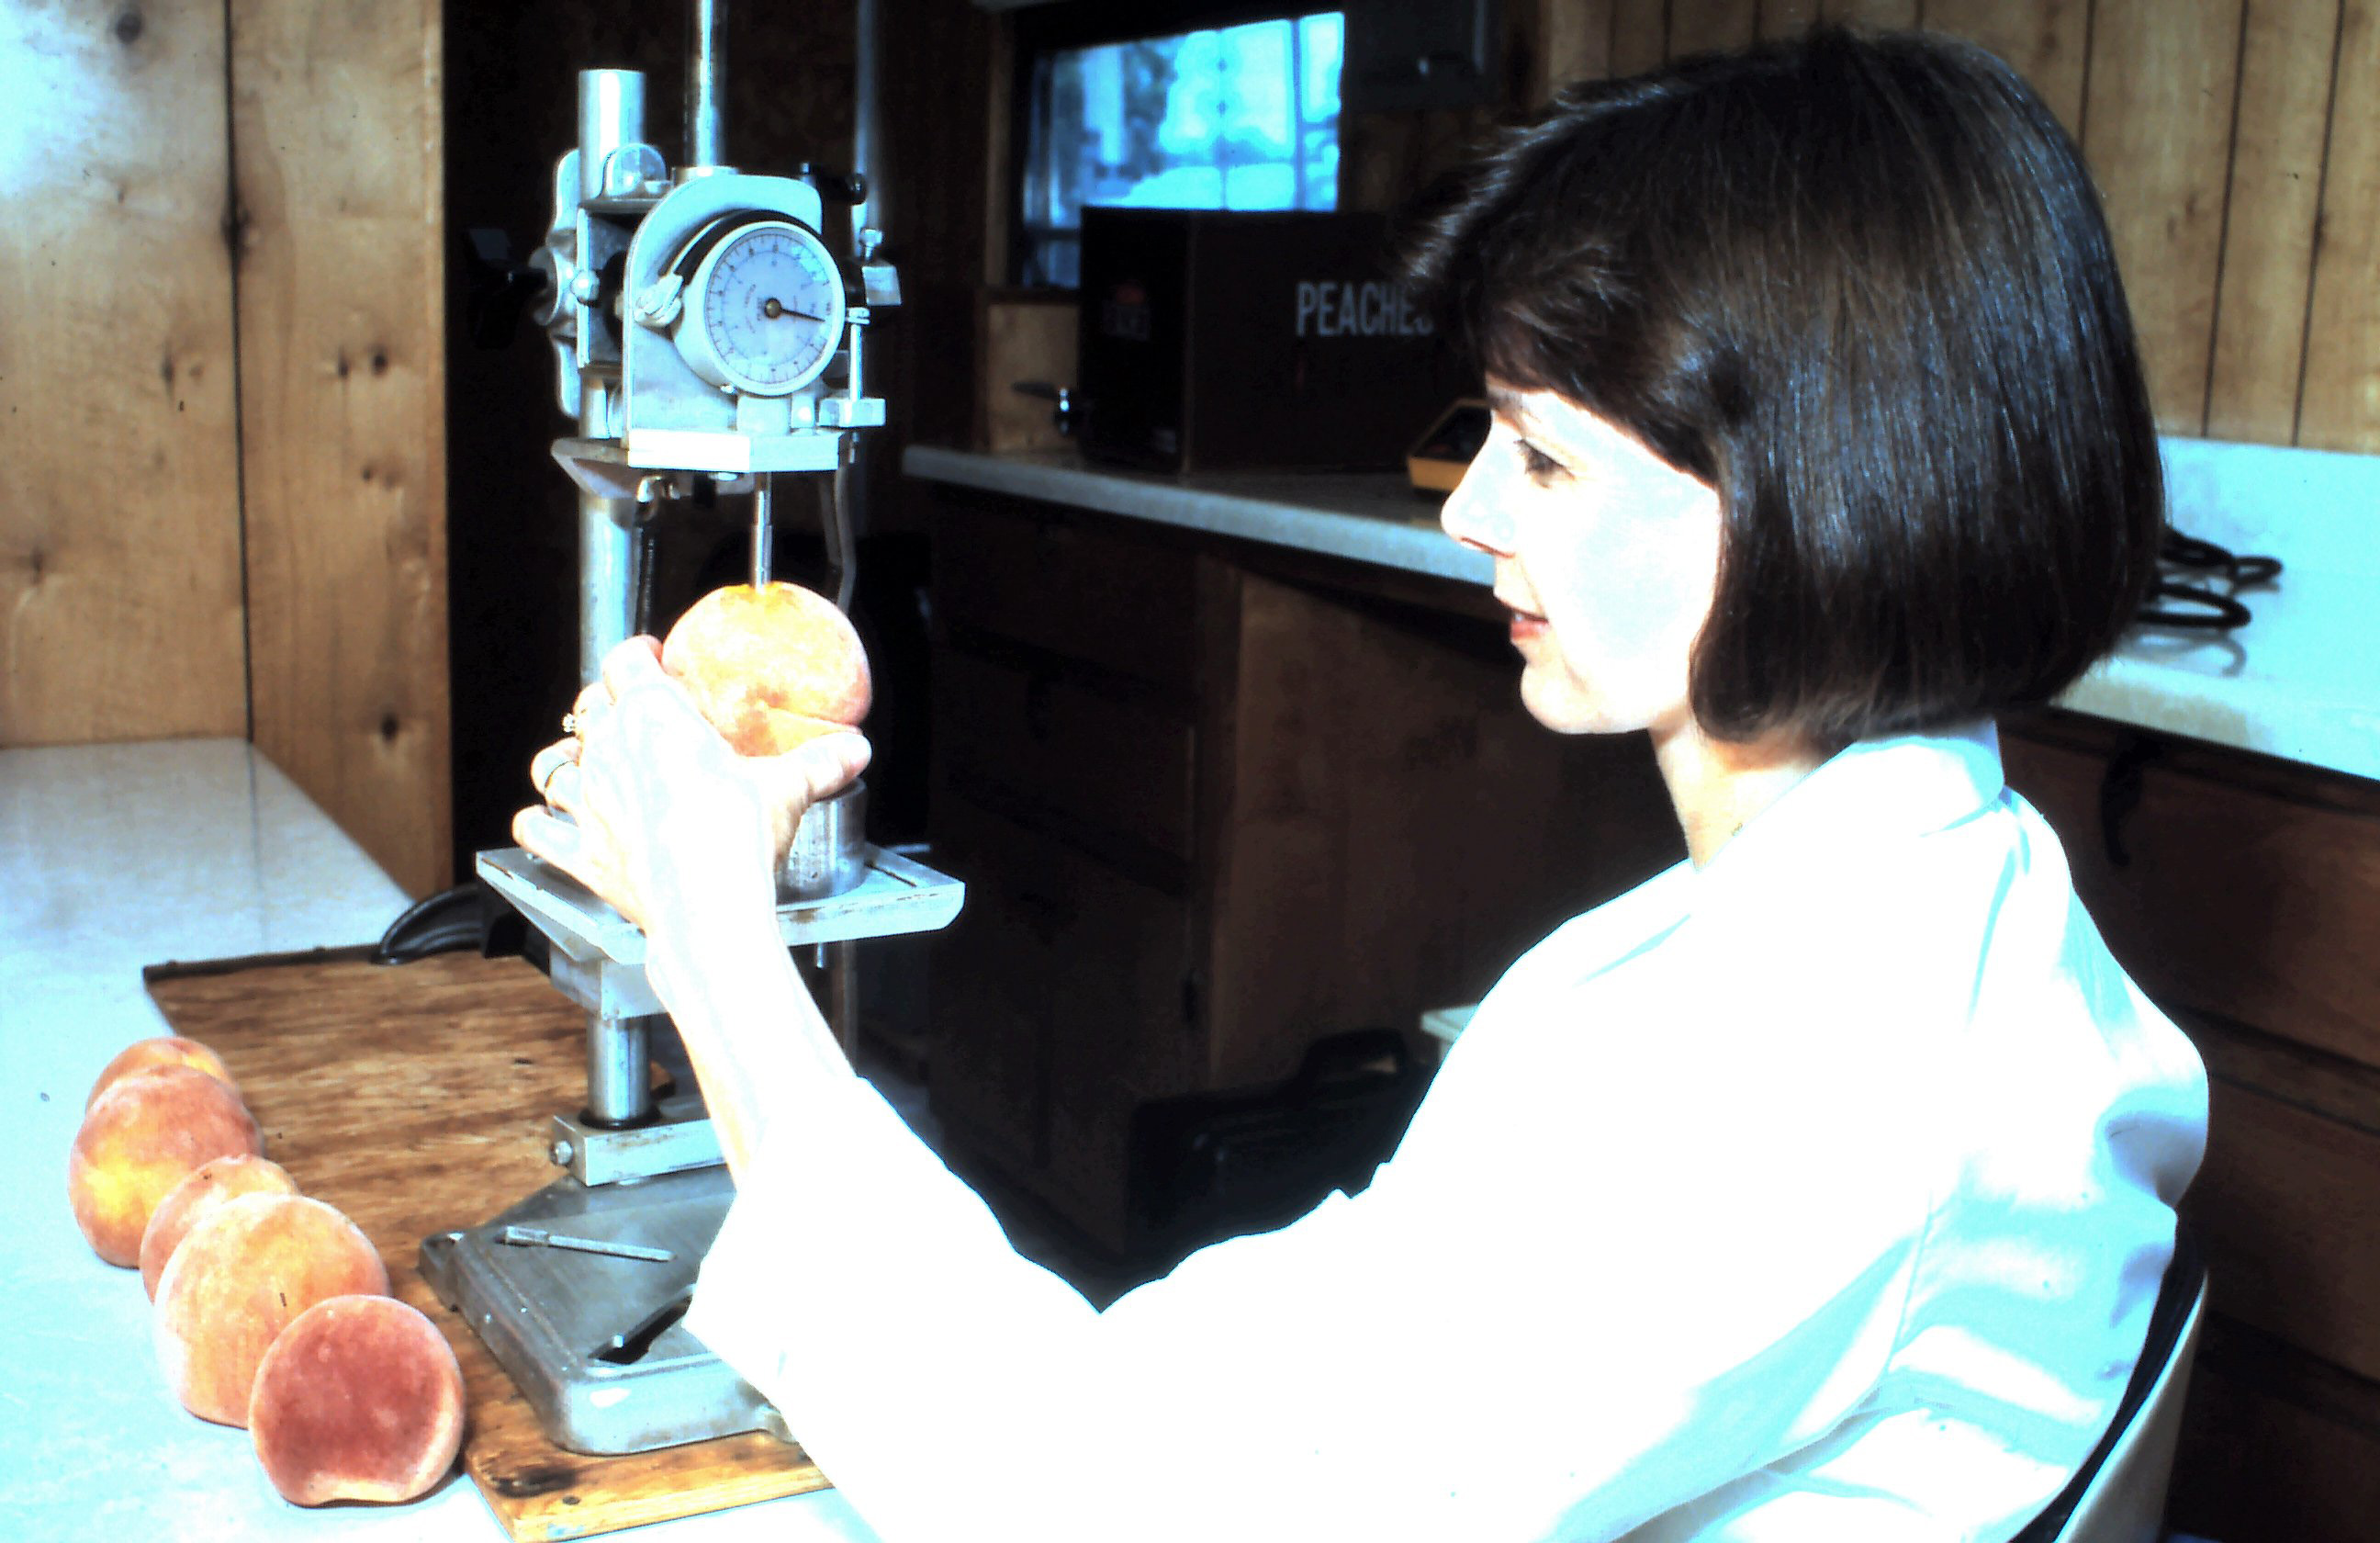 Technician using a drill press to measure peach firmness